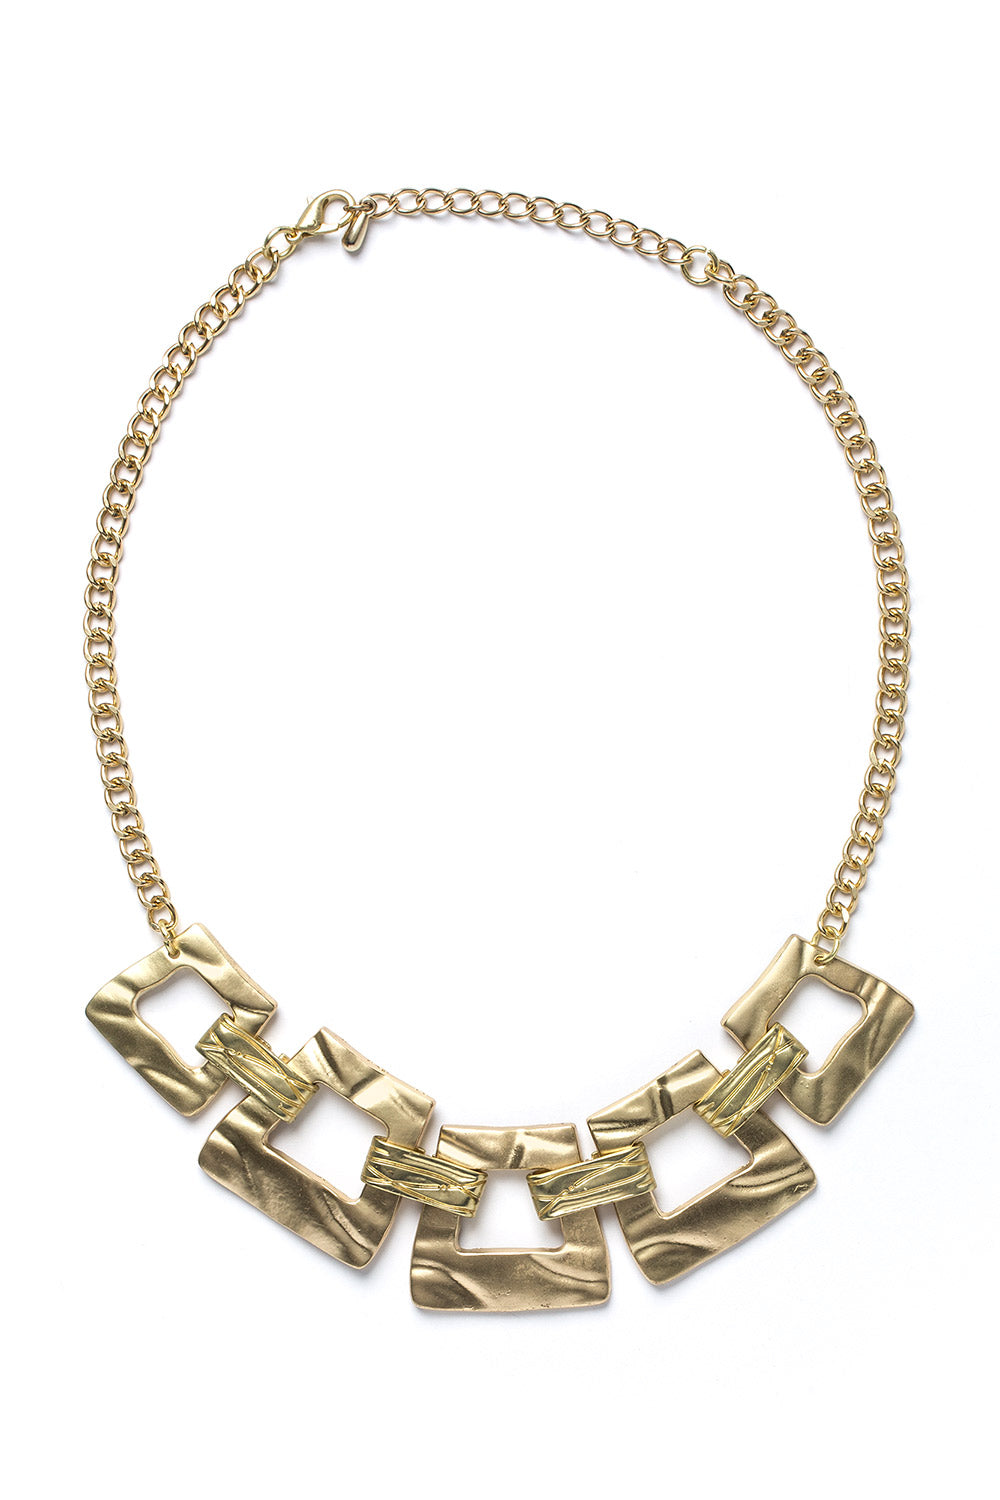 Type 3 Hook Me Up Necklace